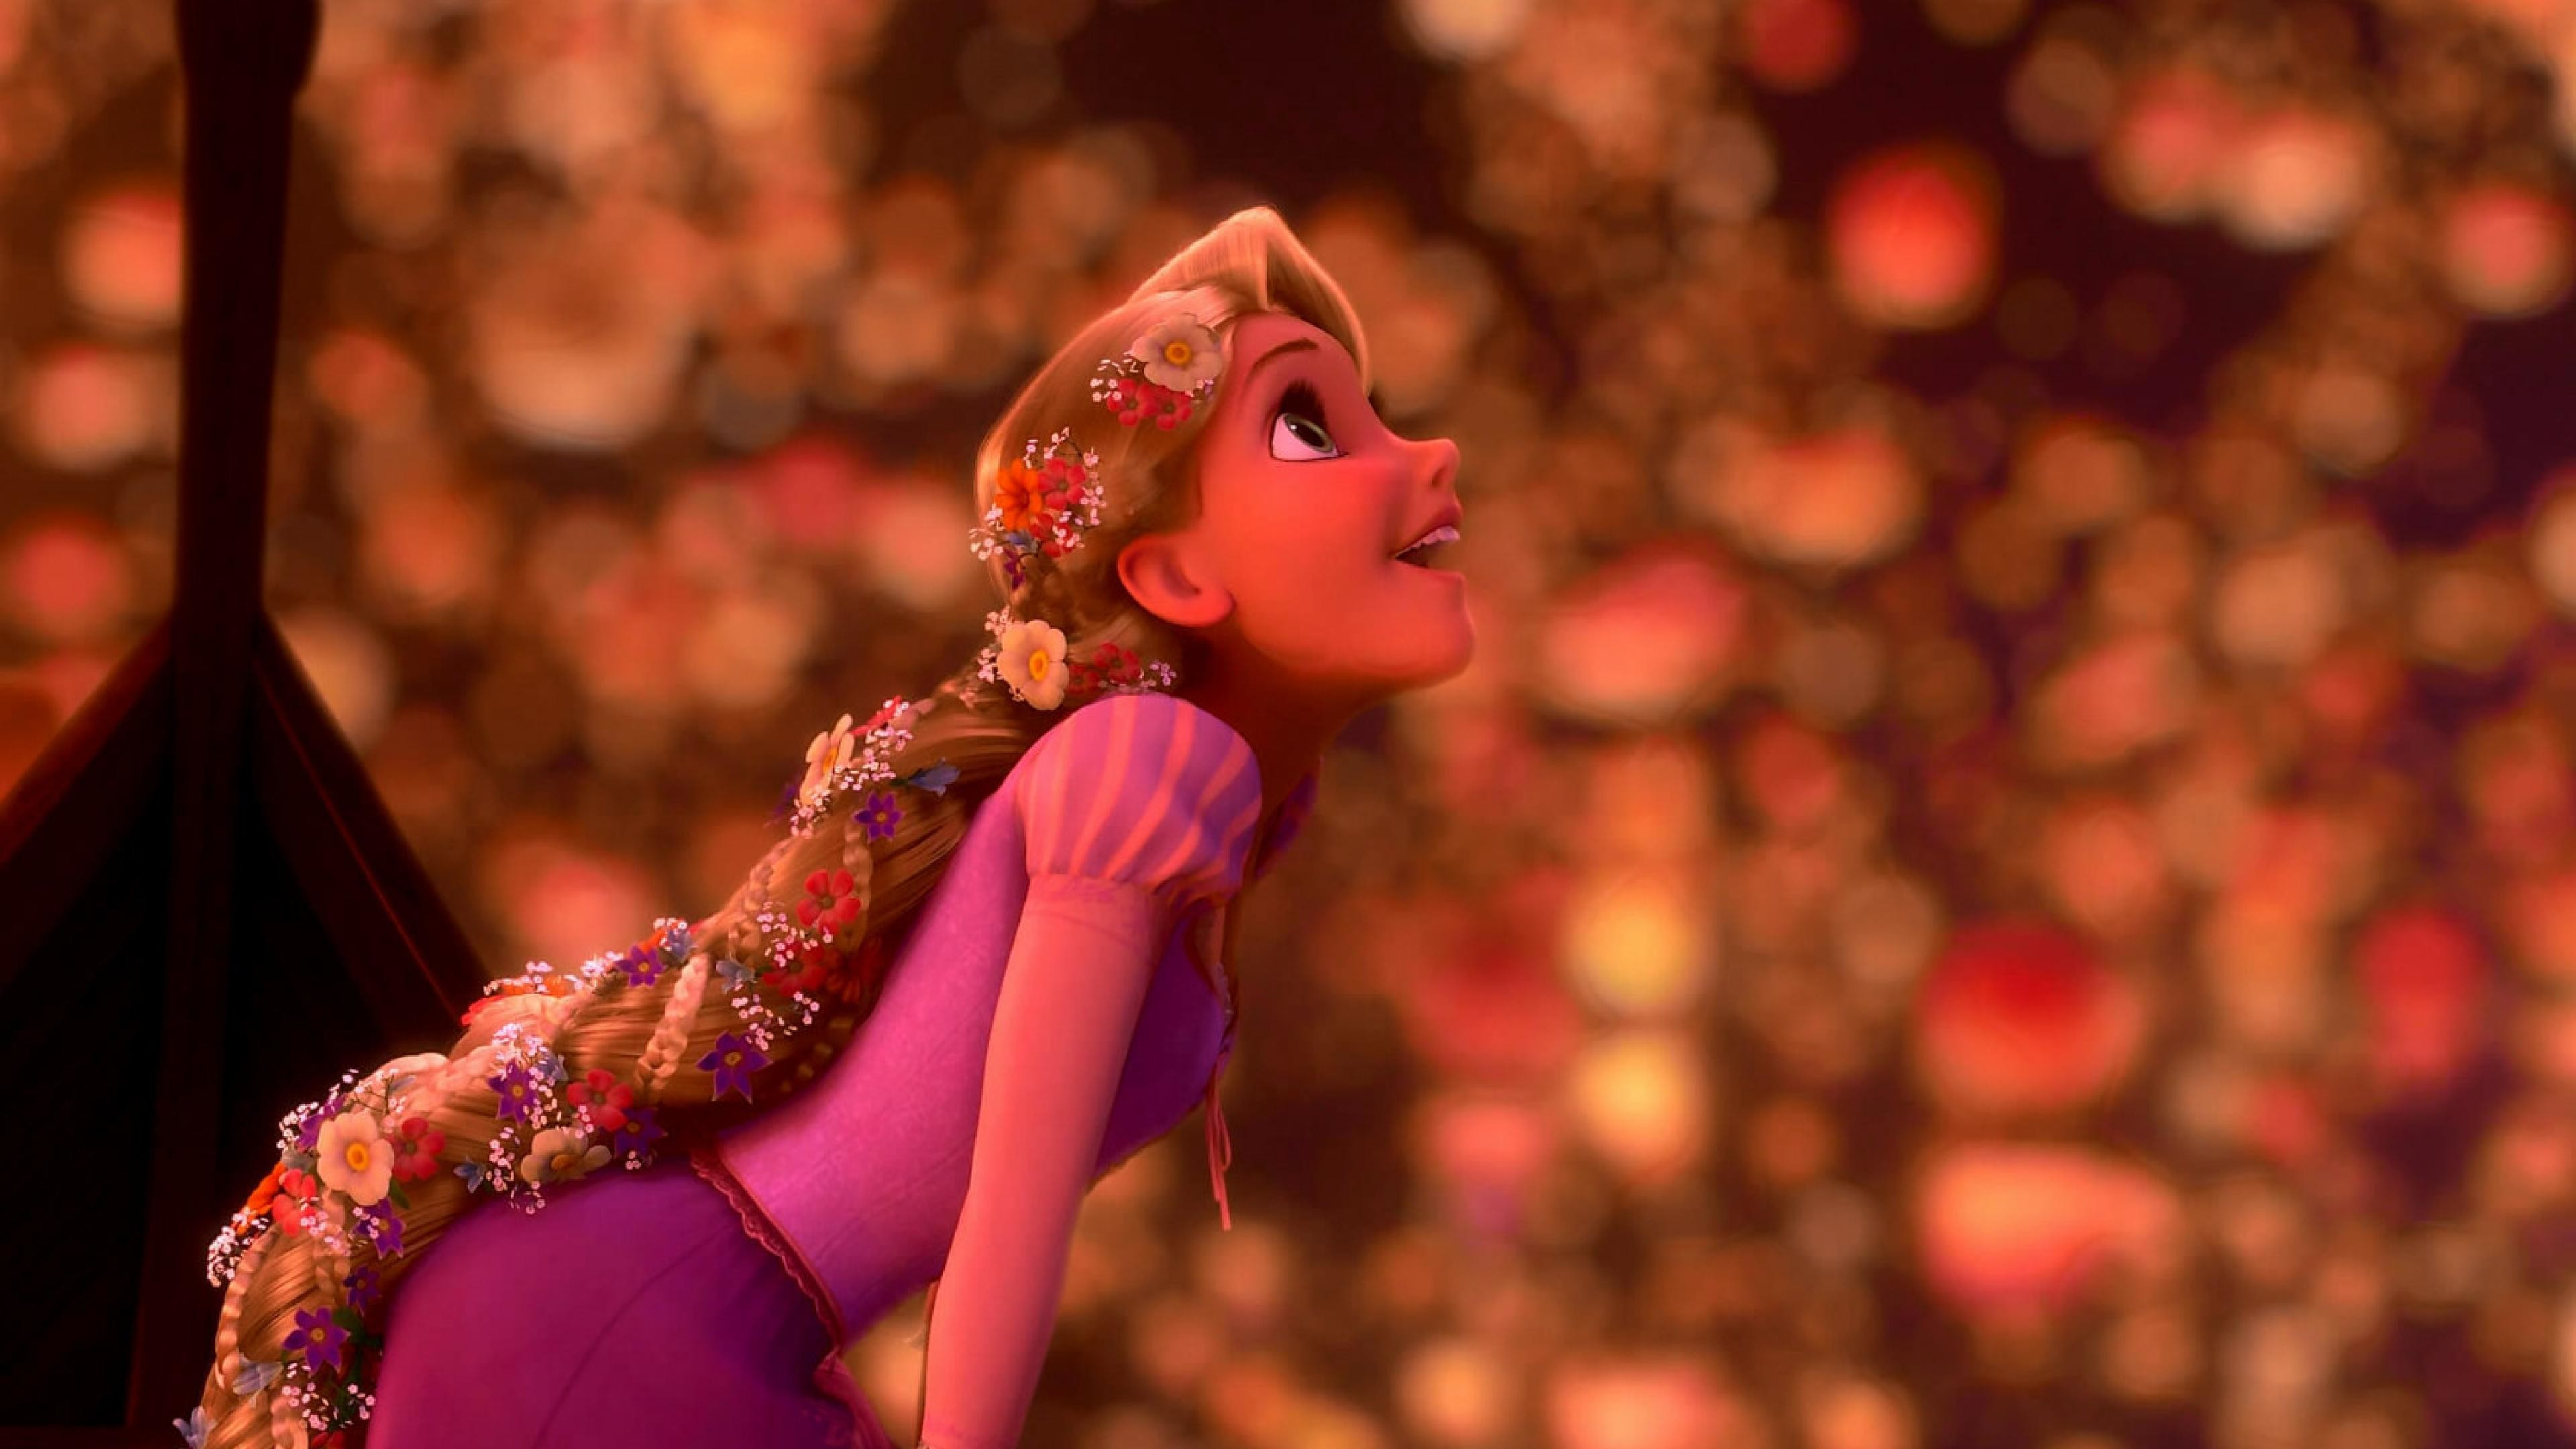 Wiki Disney Tangled Picture Free Download Pic Data Tangled Hd Images Free Download 3840x2160 Wallpaper Teahub Io